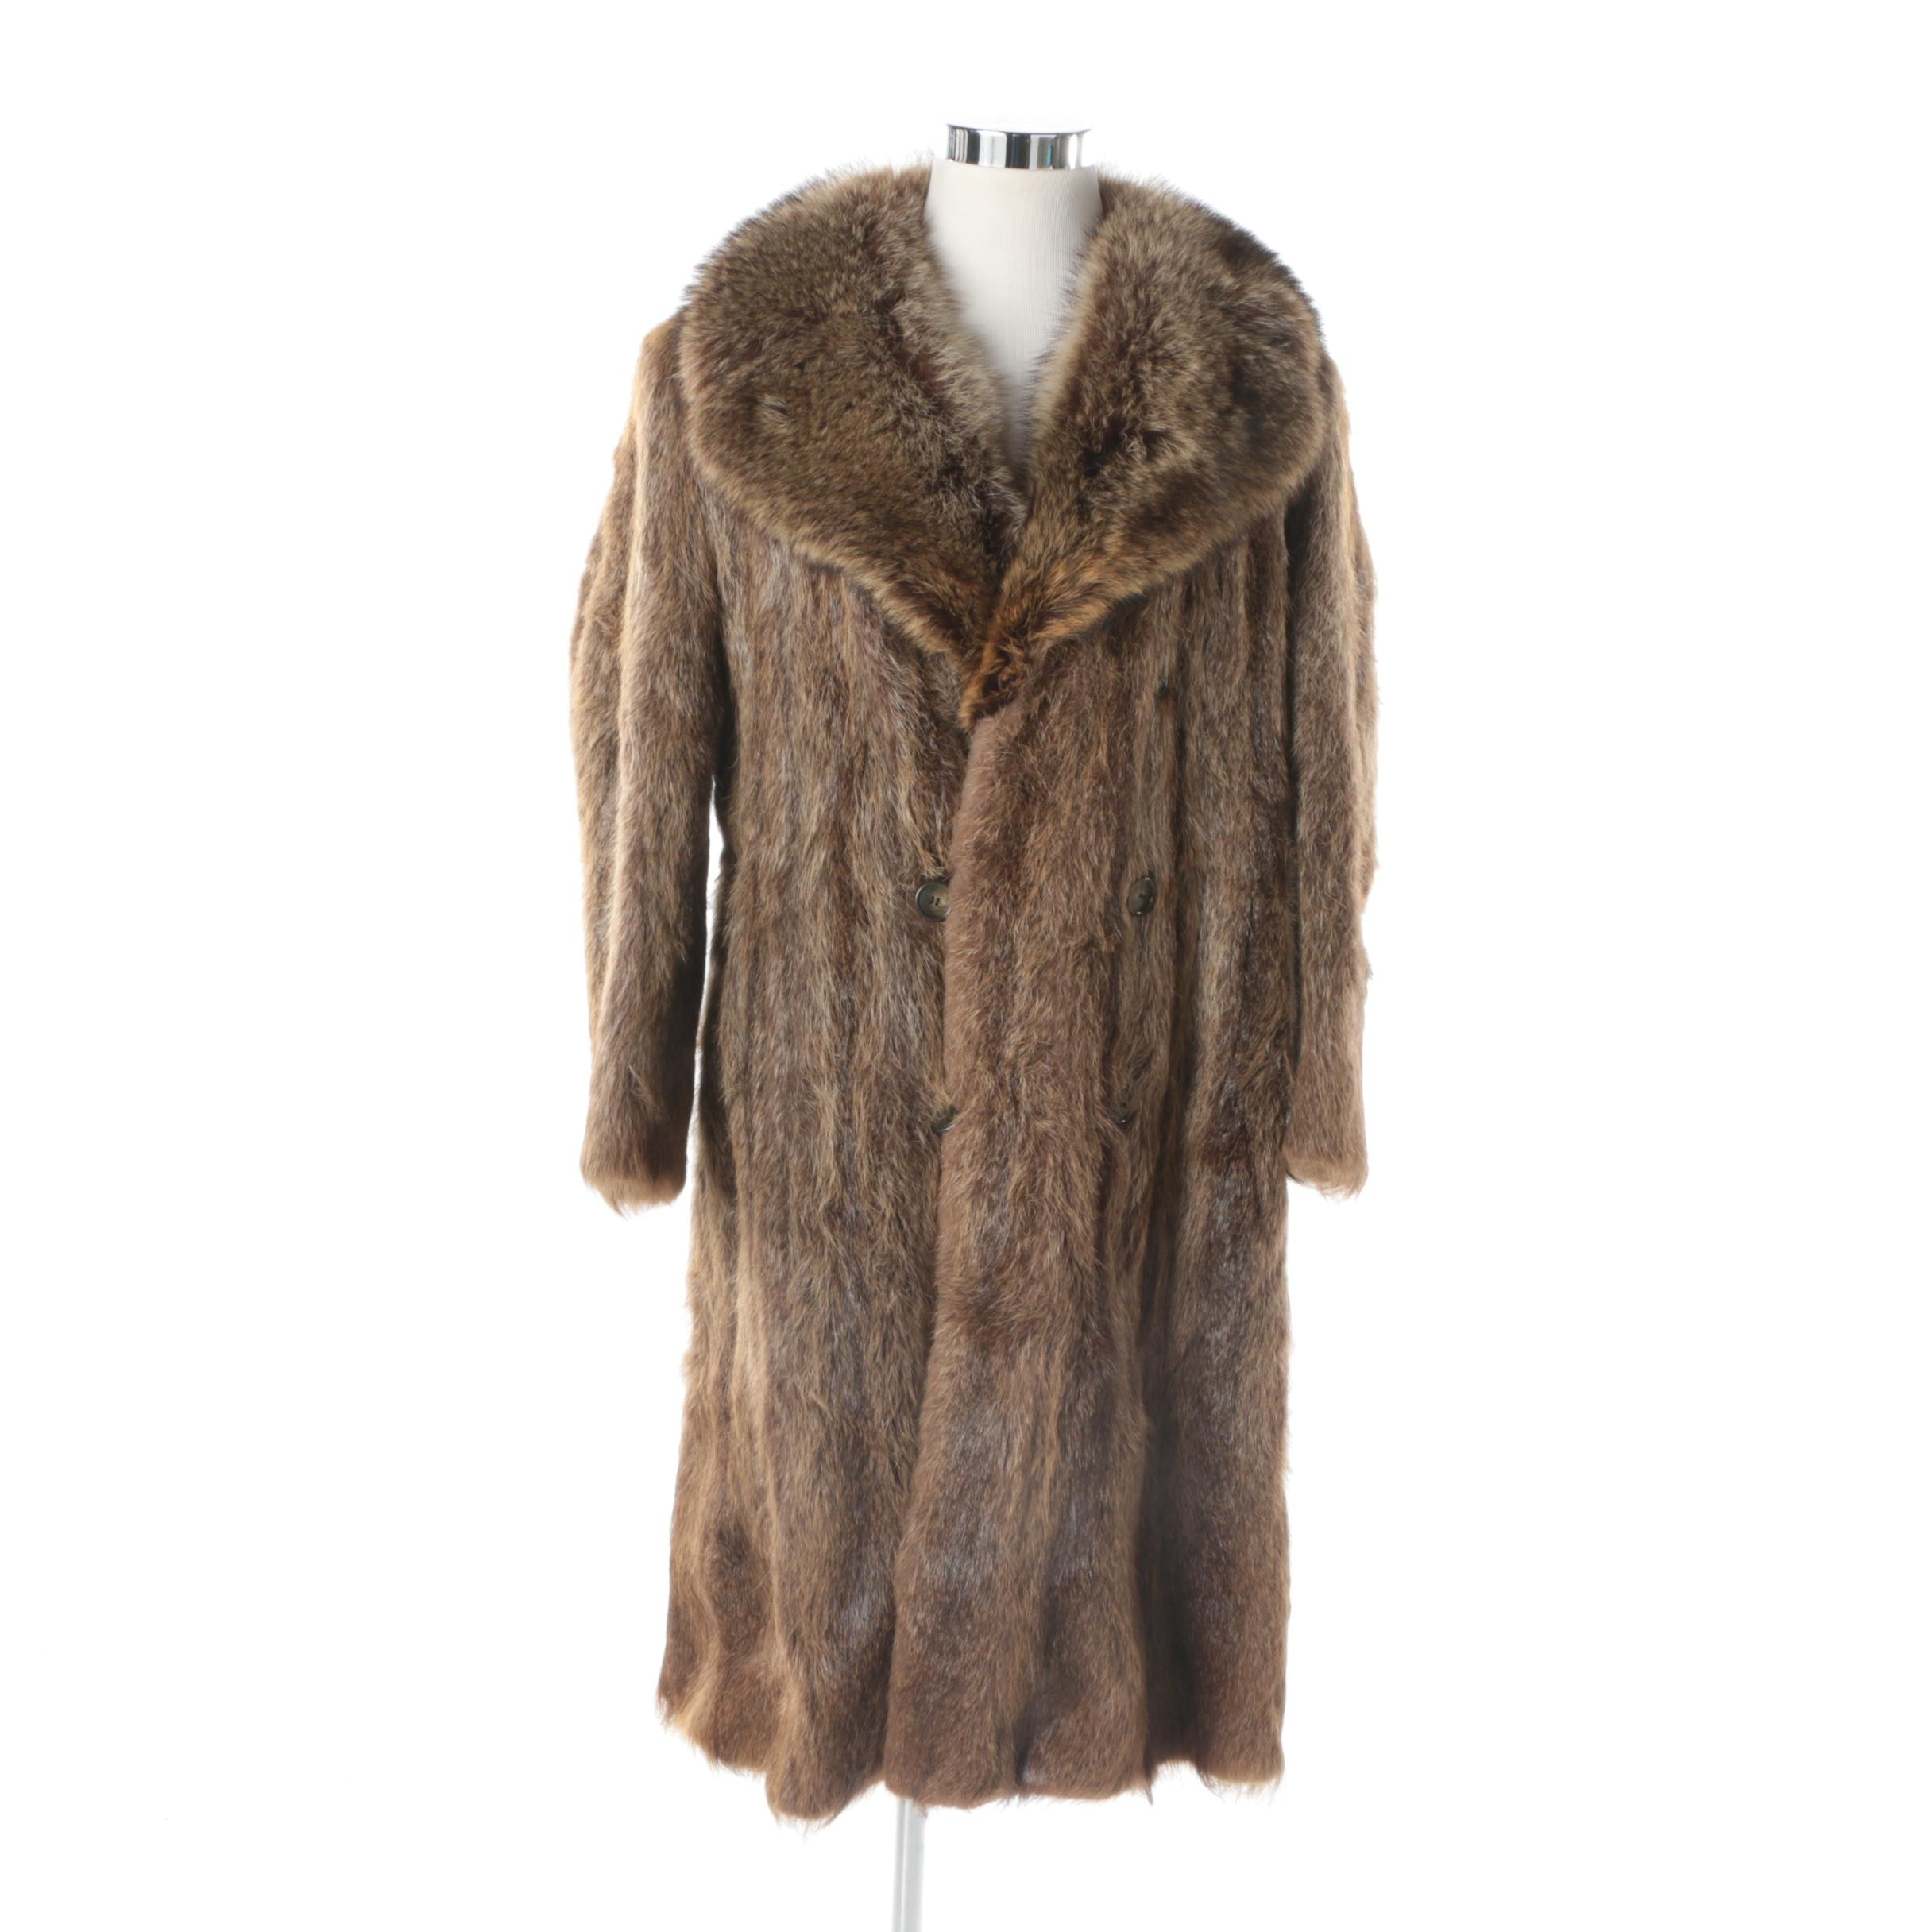 Men's Vintage Blum's Vogue Chicago Raccoon Fur Coat